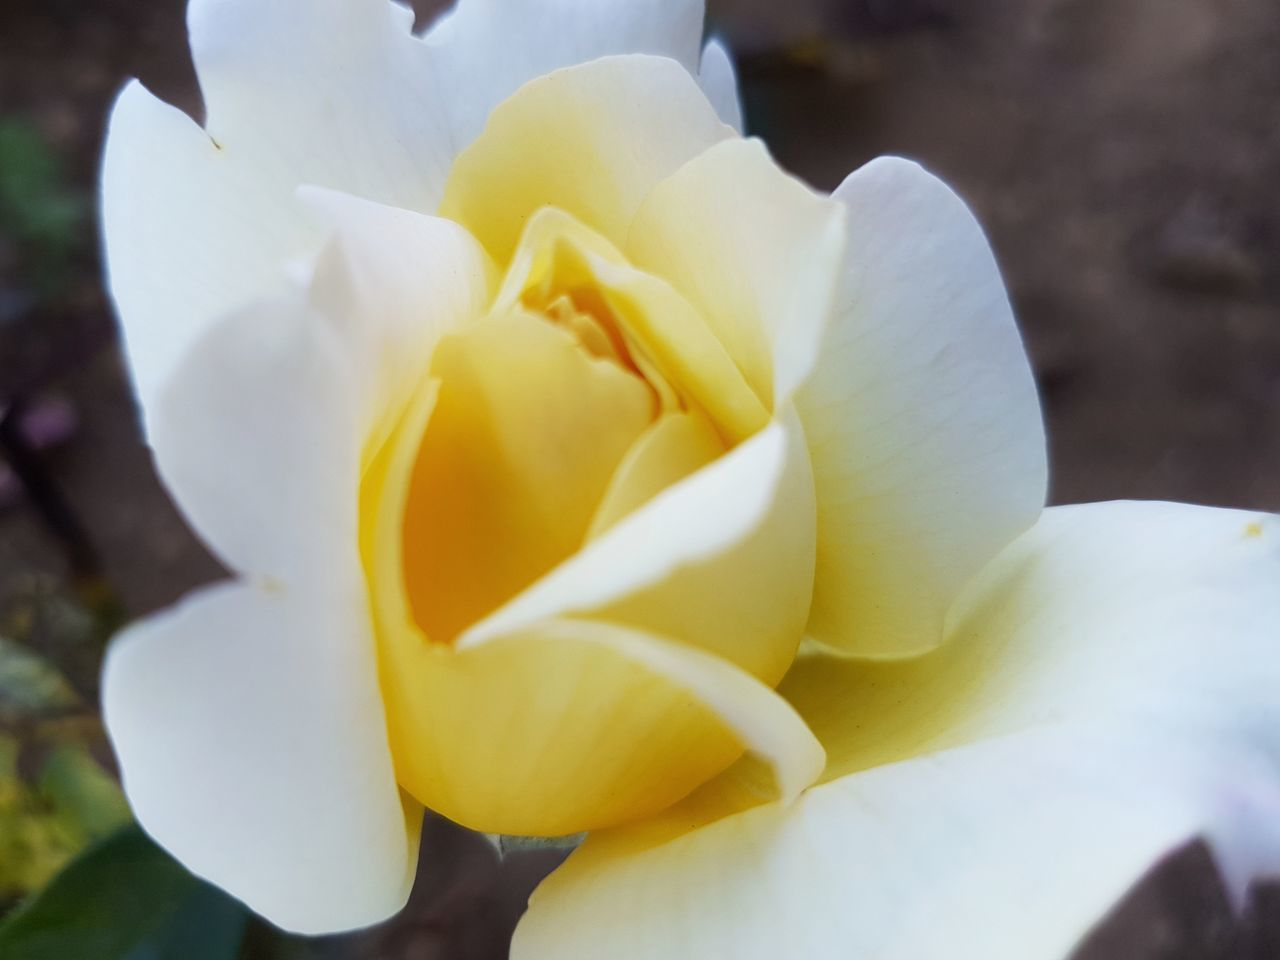 [TFC] Yellow Flower Close-up Springtime Fragility Petal Flower Head Nature No People Outdoors Freshness Beauty In Nature Day White Perspective Contrast And Lights Wonderful Inspirations Plant Beauty In Nature Freshness Tranquil Scene Growth Rose - Flower Simplicity